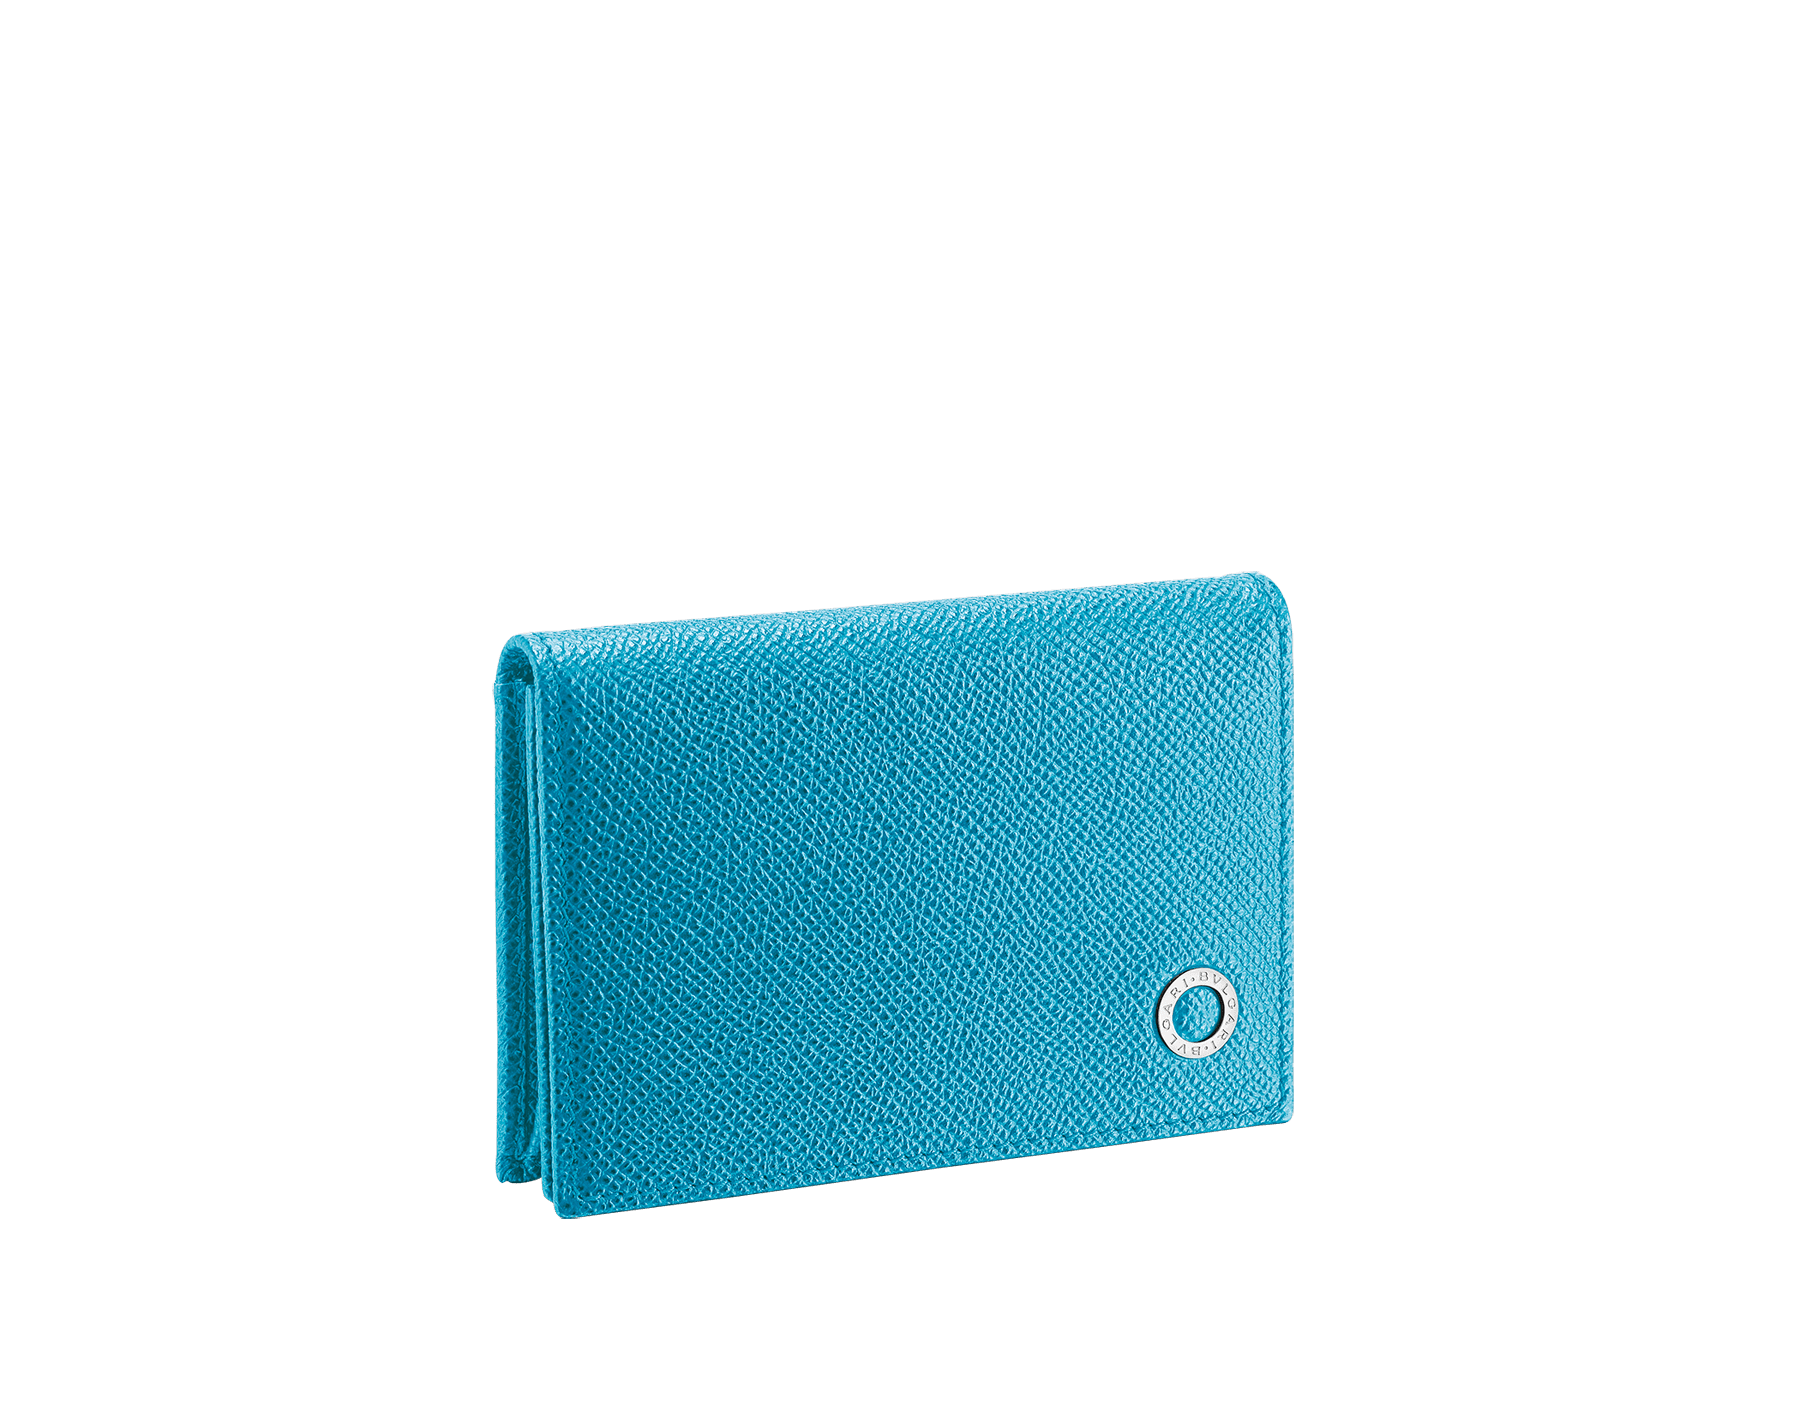 """""""BVLGARI BVLGARI"""" business card holder in capri turquoise and royal sapphire grain calf leather, with brass palladium plated logo décor. BBM-BC-HOLD-SIMPLEb image 1"""